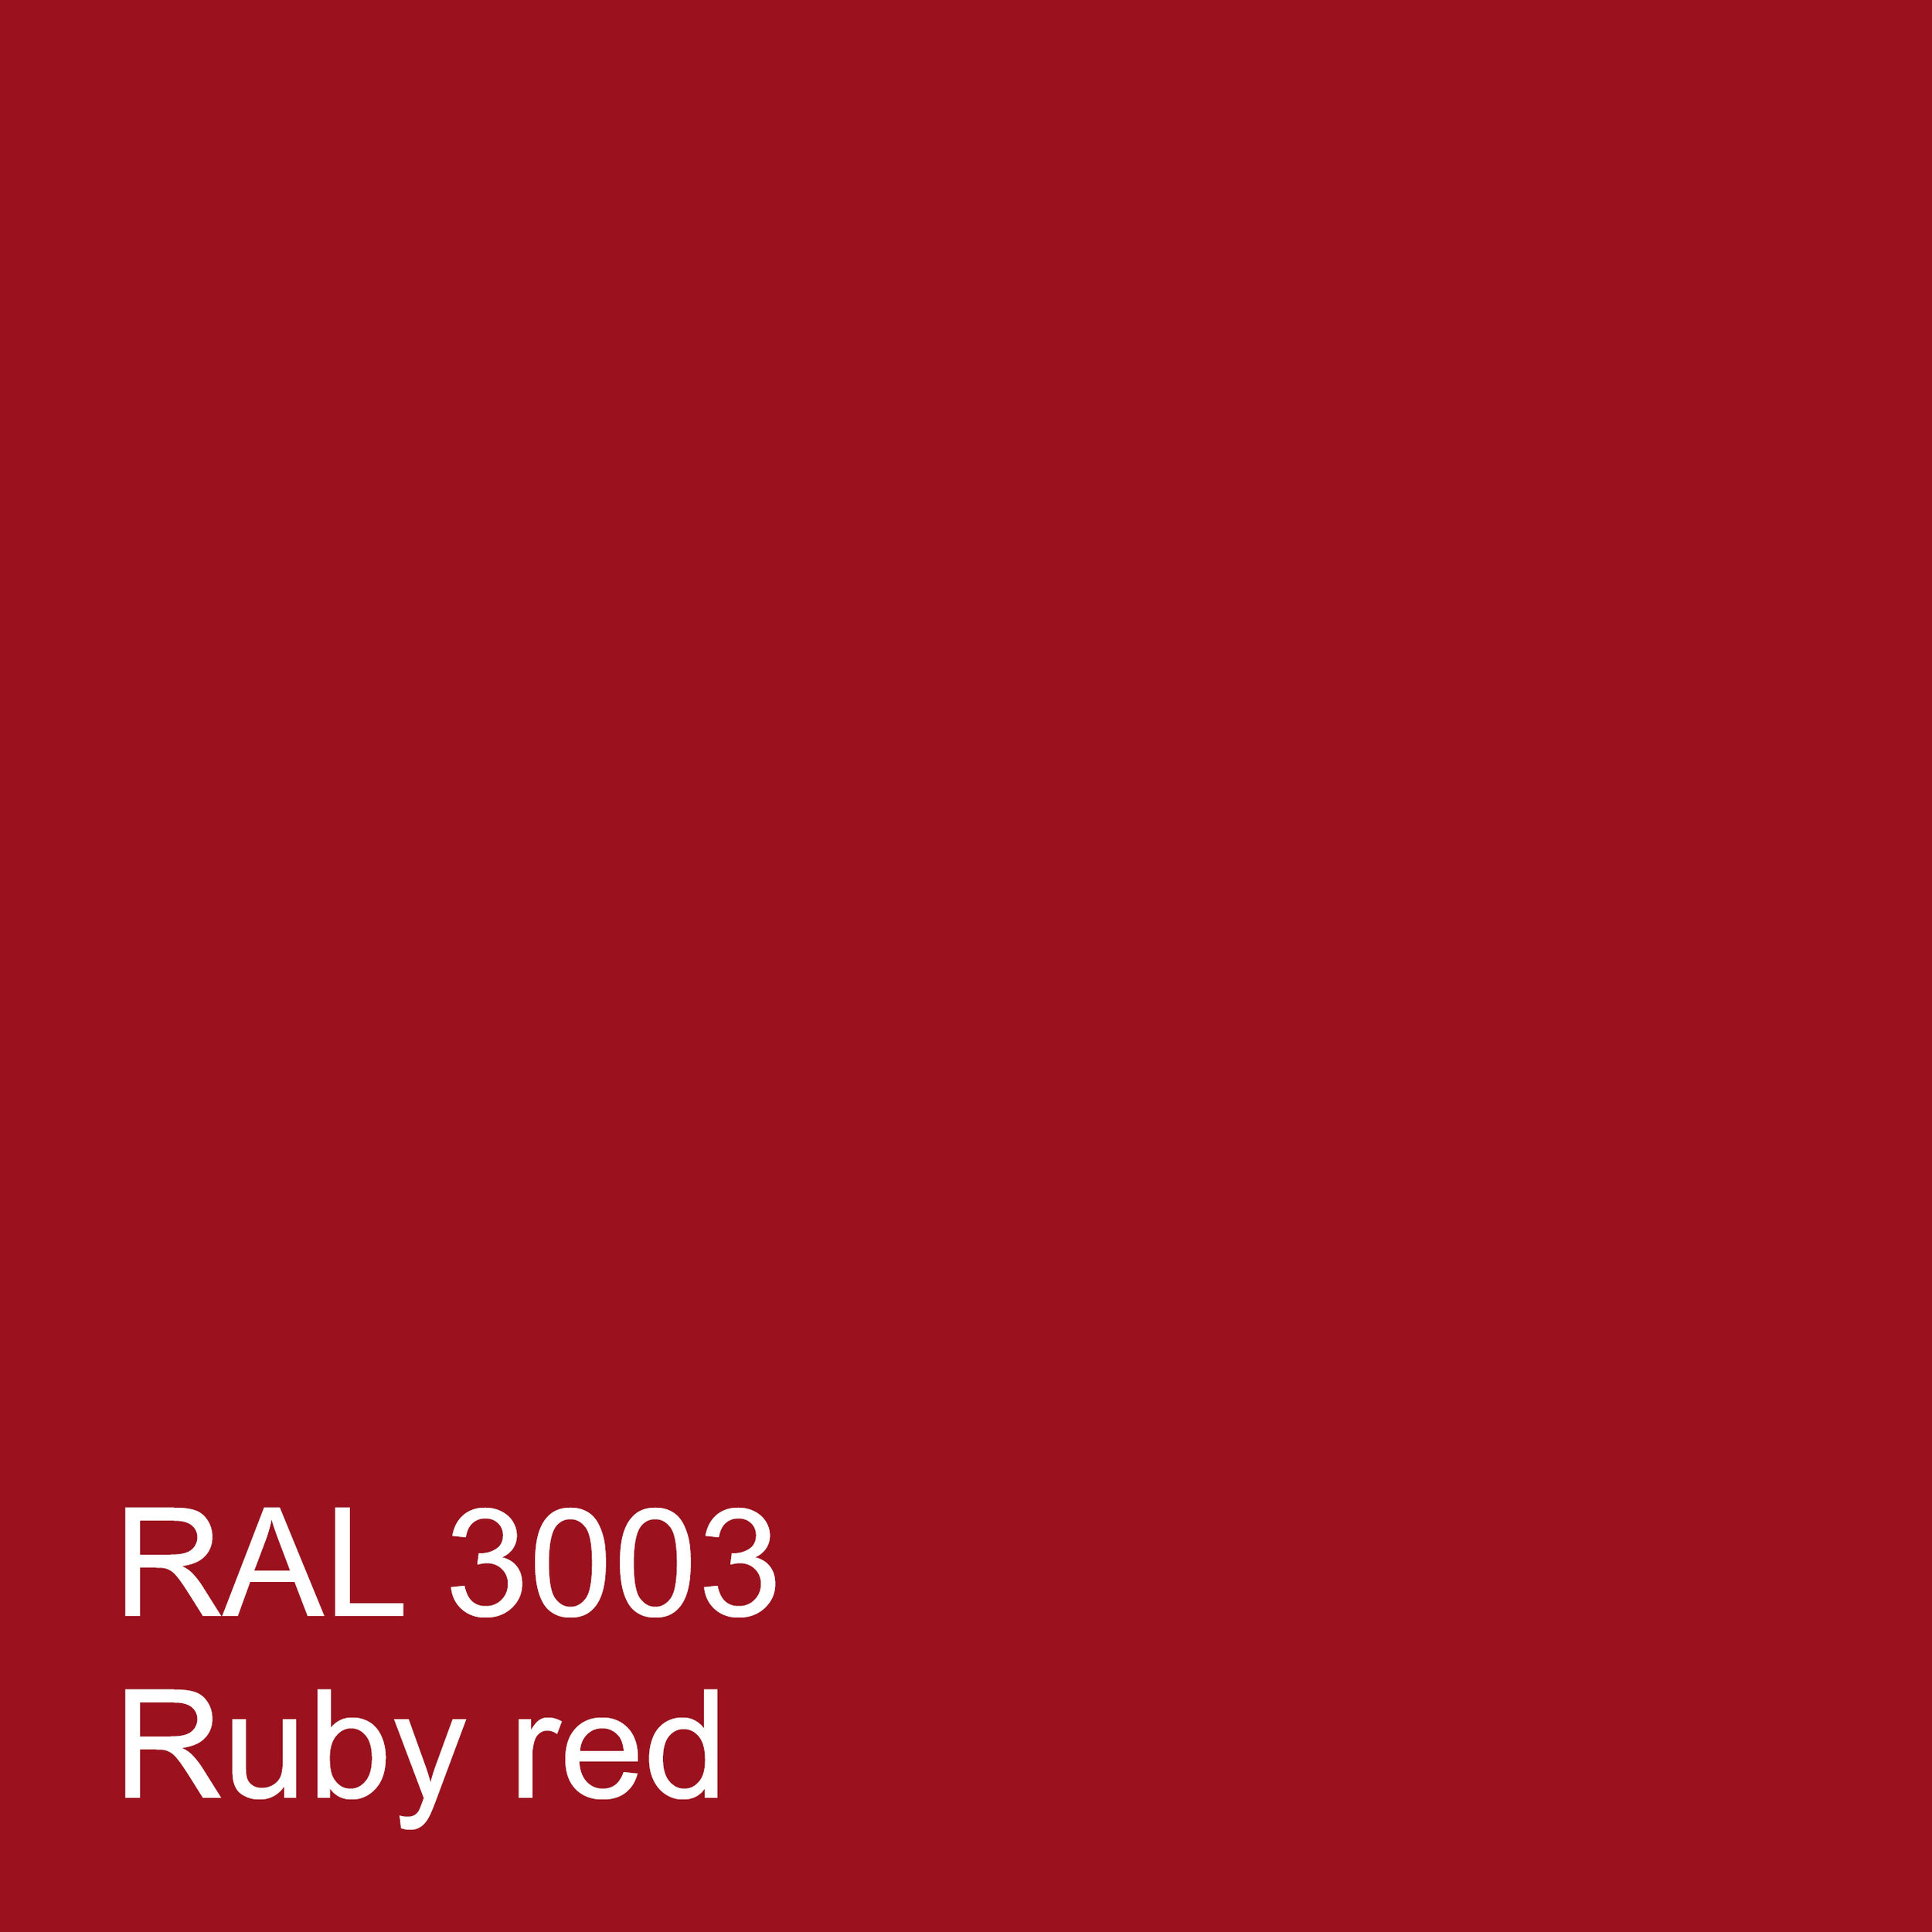 RAL 3003 RUBY RED.jpg